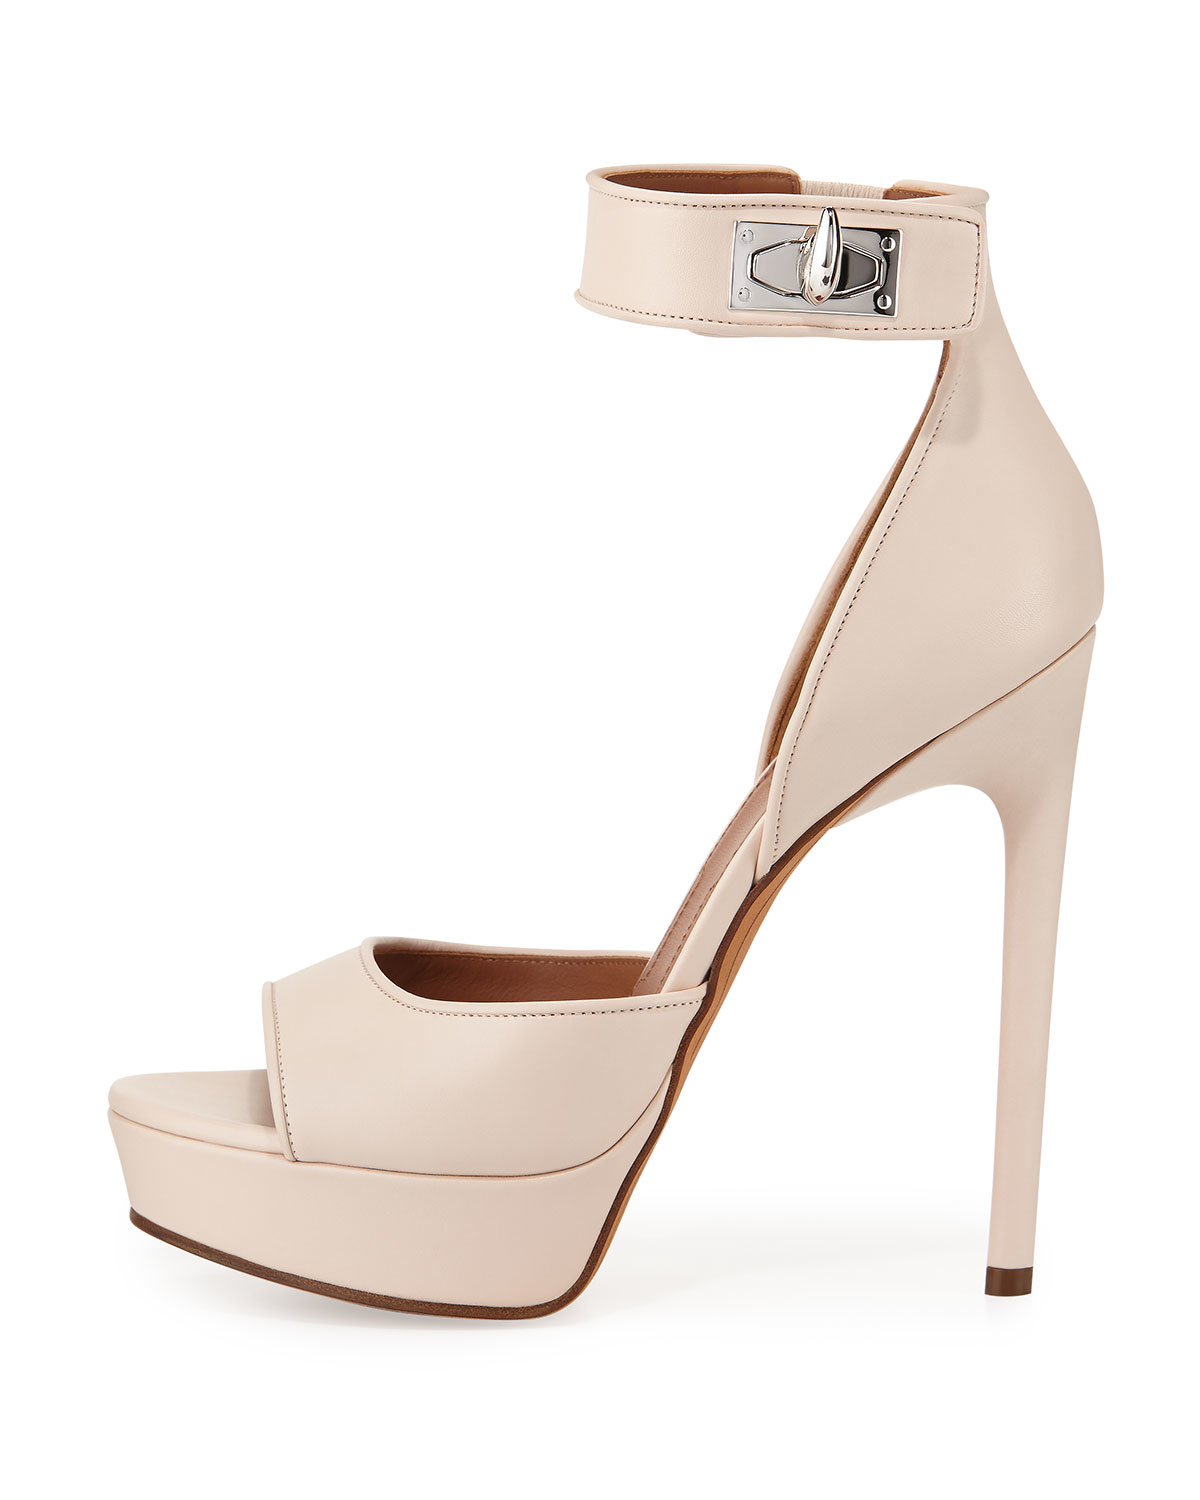 9ef1d5f34f1 Lyst - Givenchy Leather Shark-lock D orsay Sandal in Pink